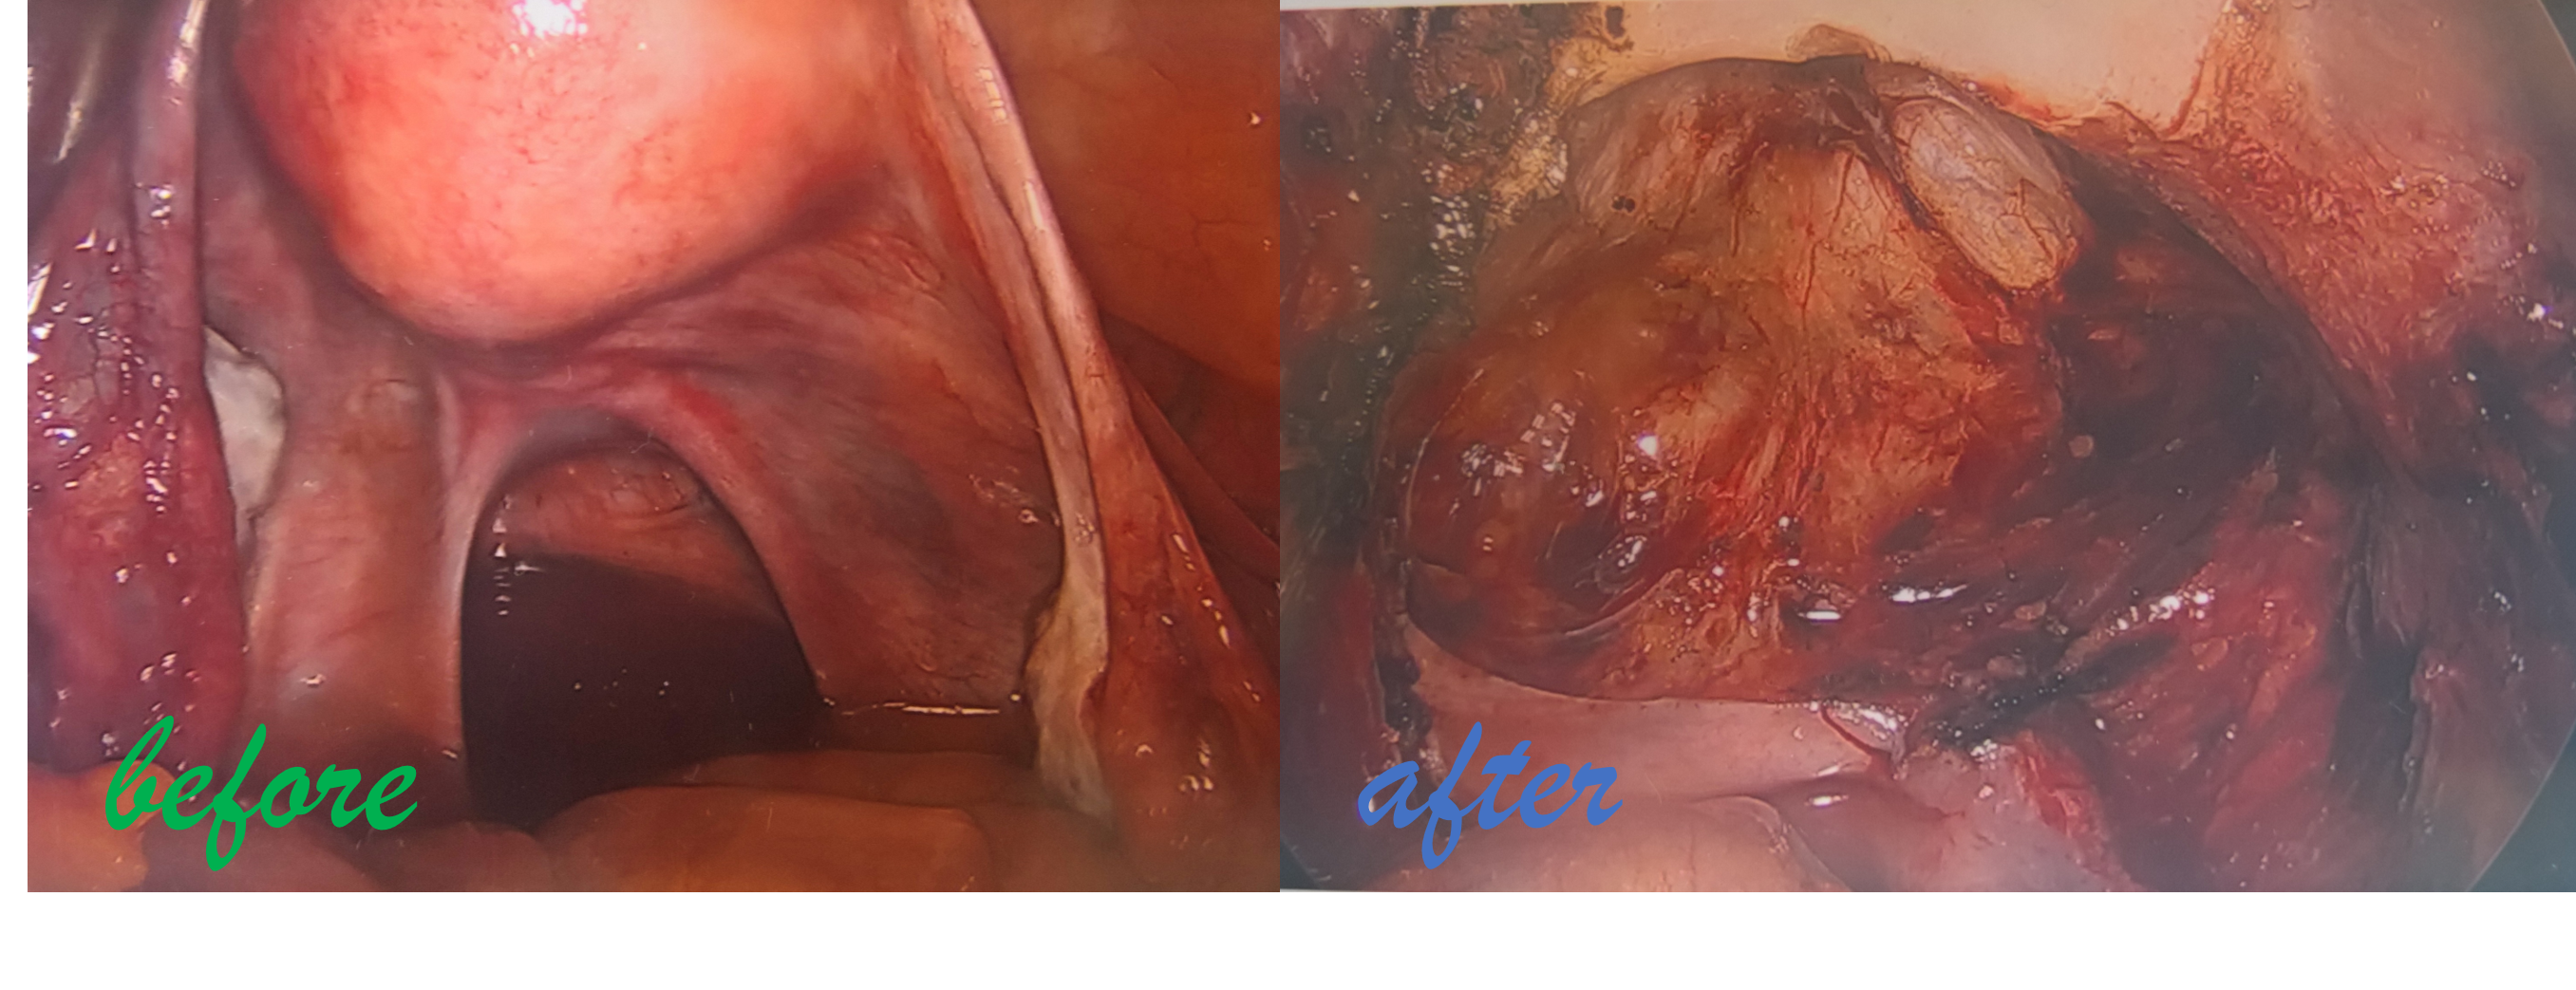 endometrosis before after